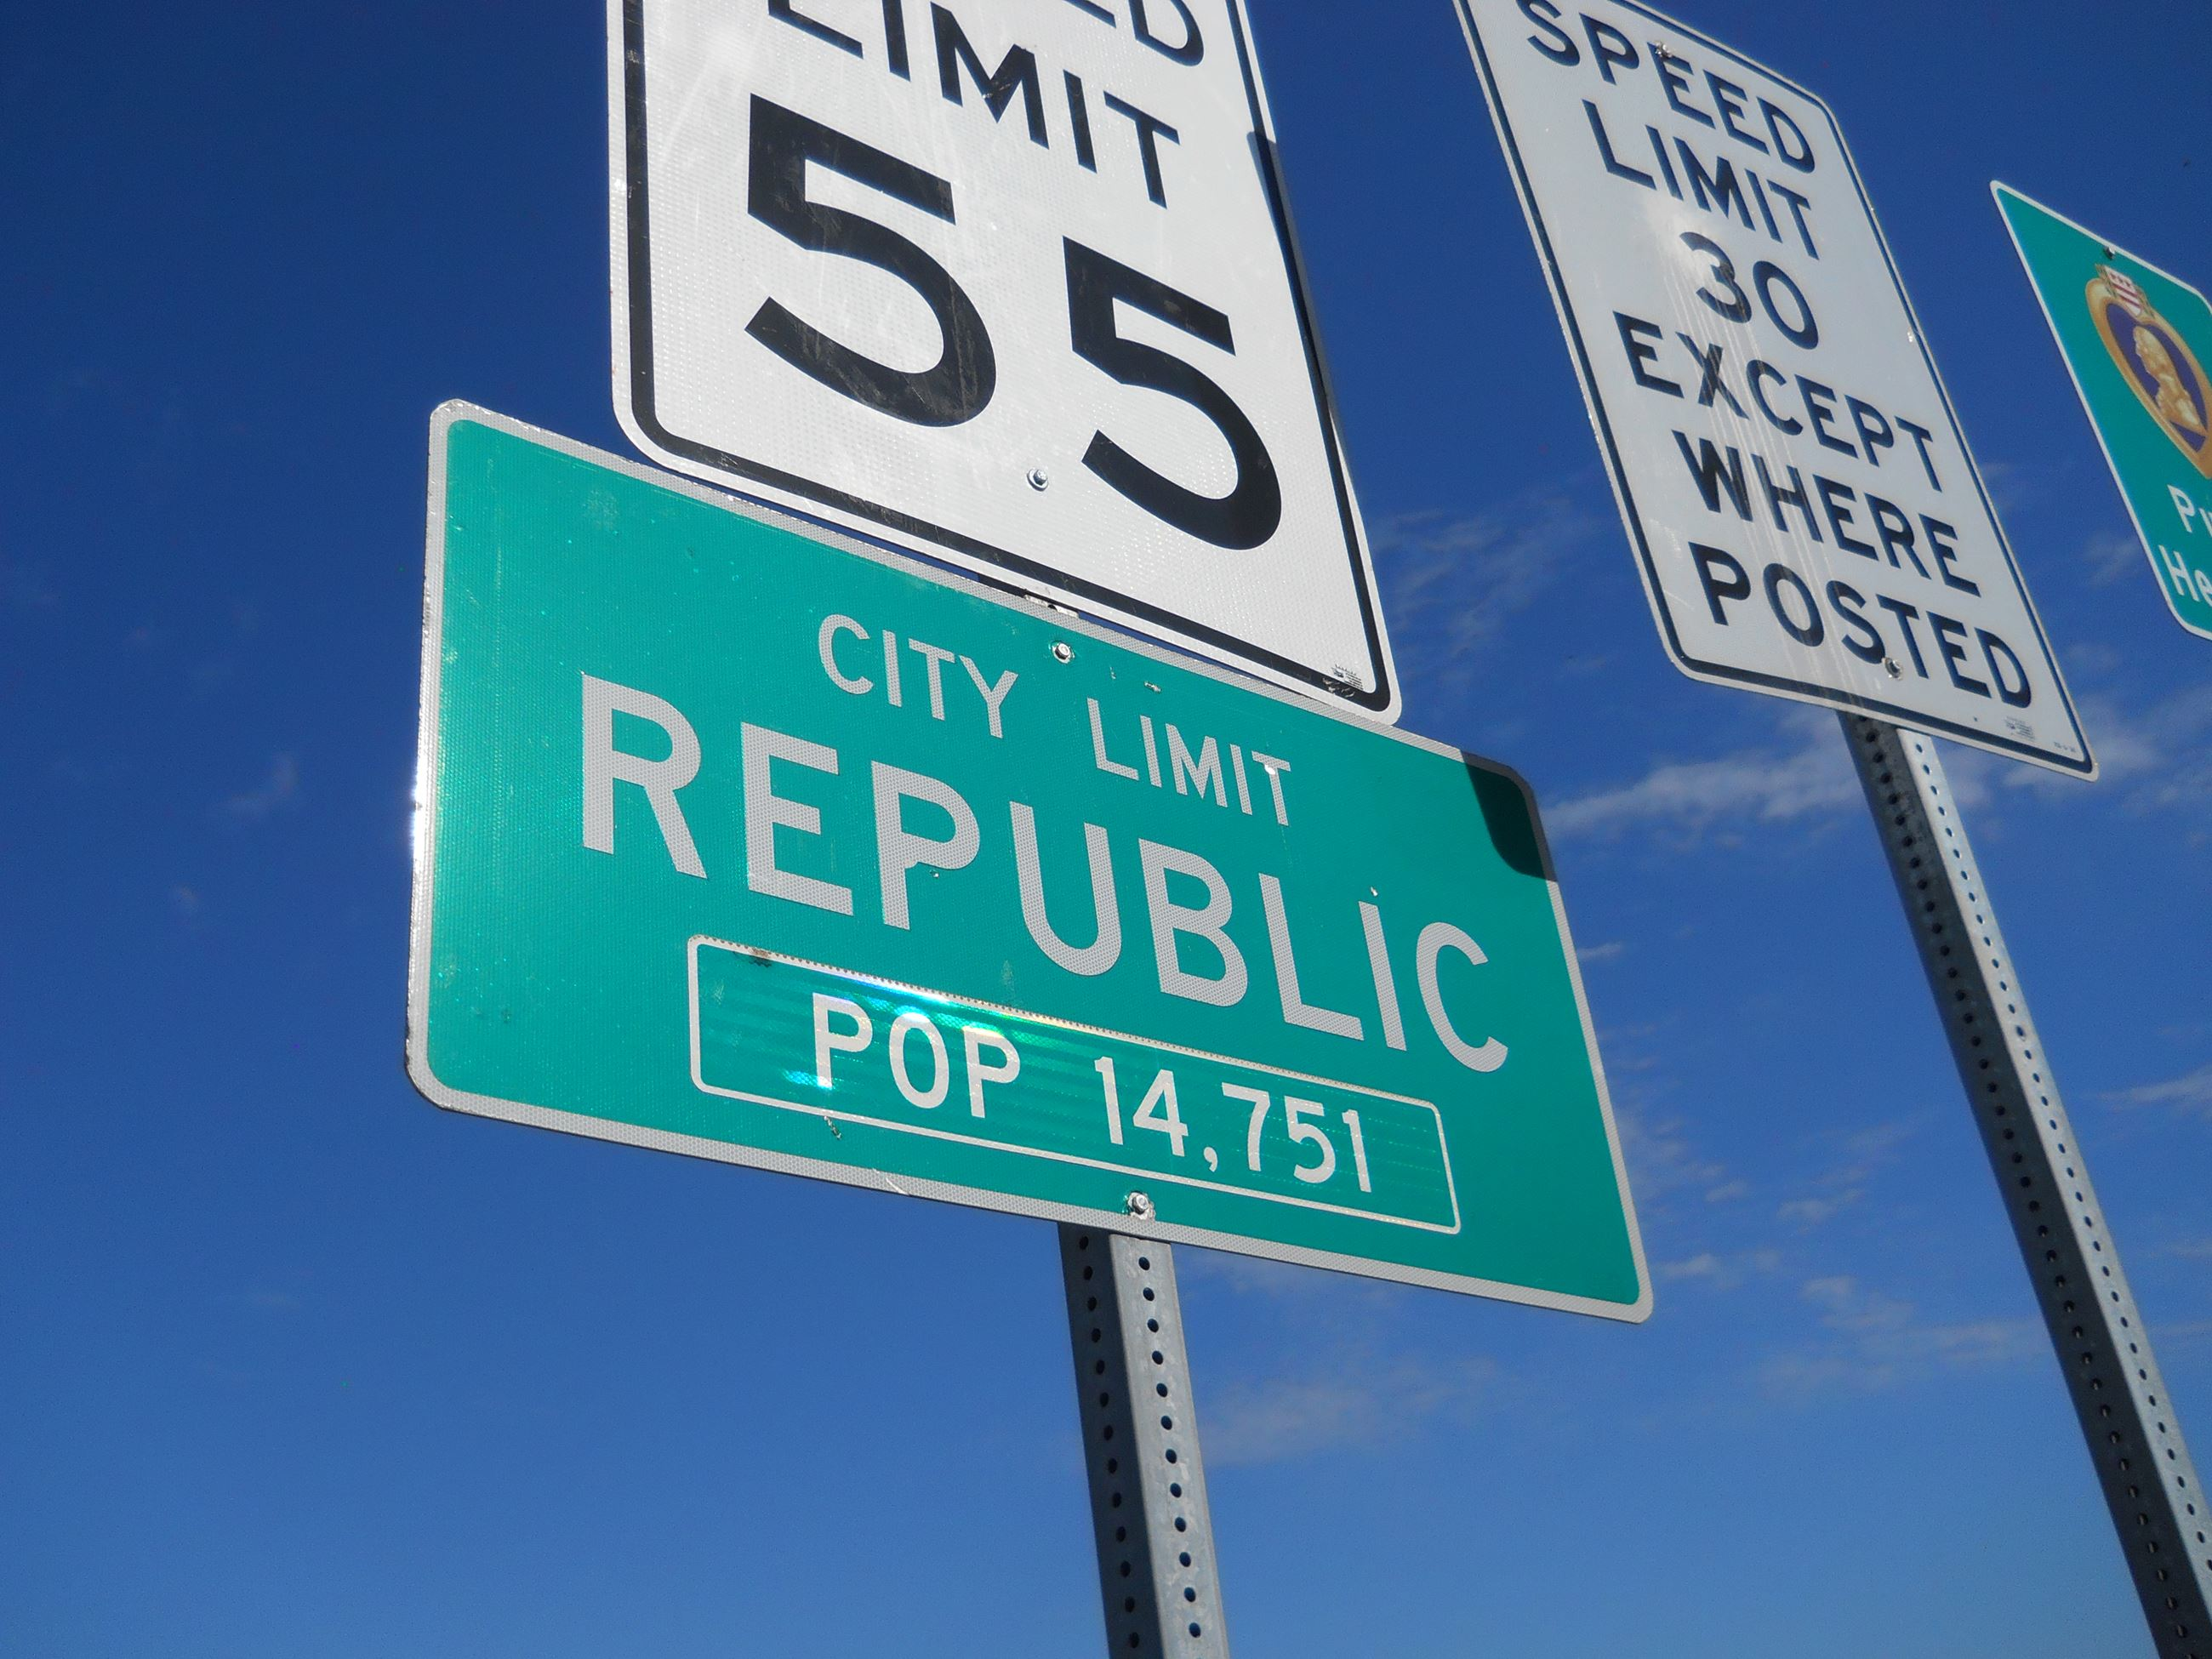 Signs marking the City Limits of Republic.